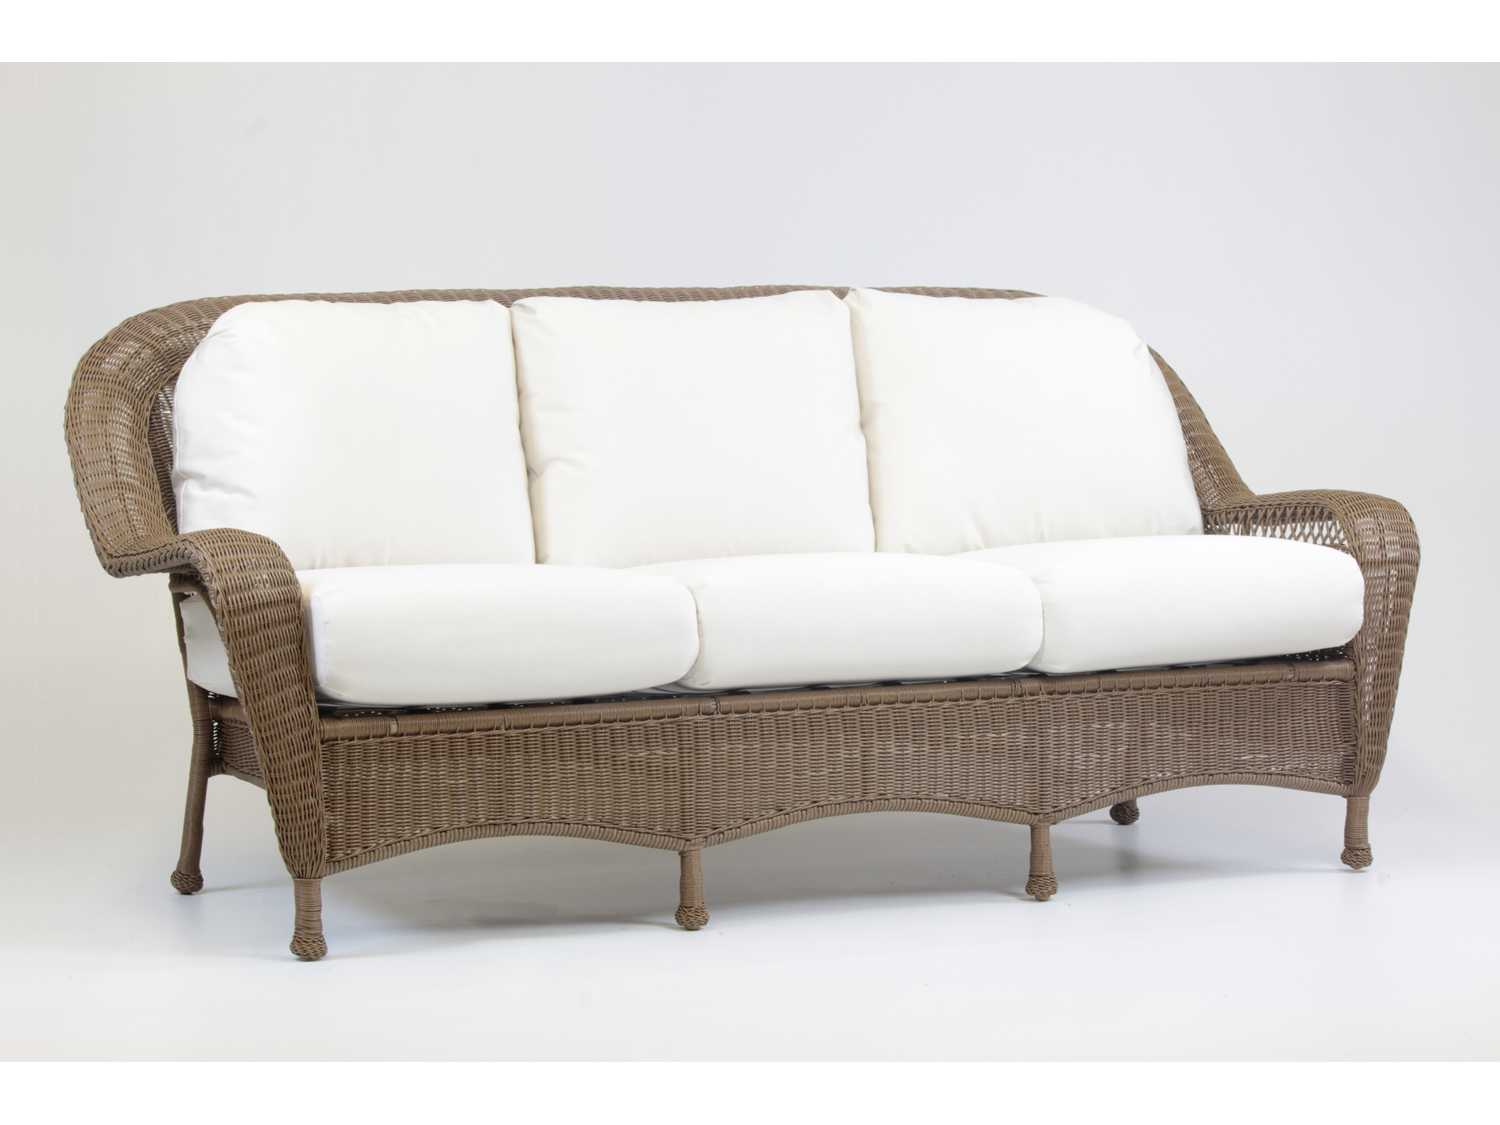 South Sea Rattan Savannah Wicker Cushion Sofa 76403